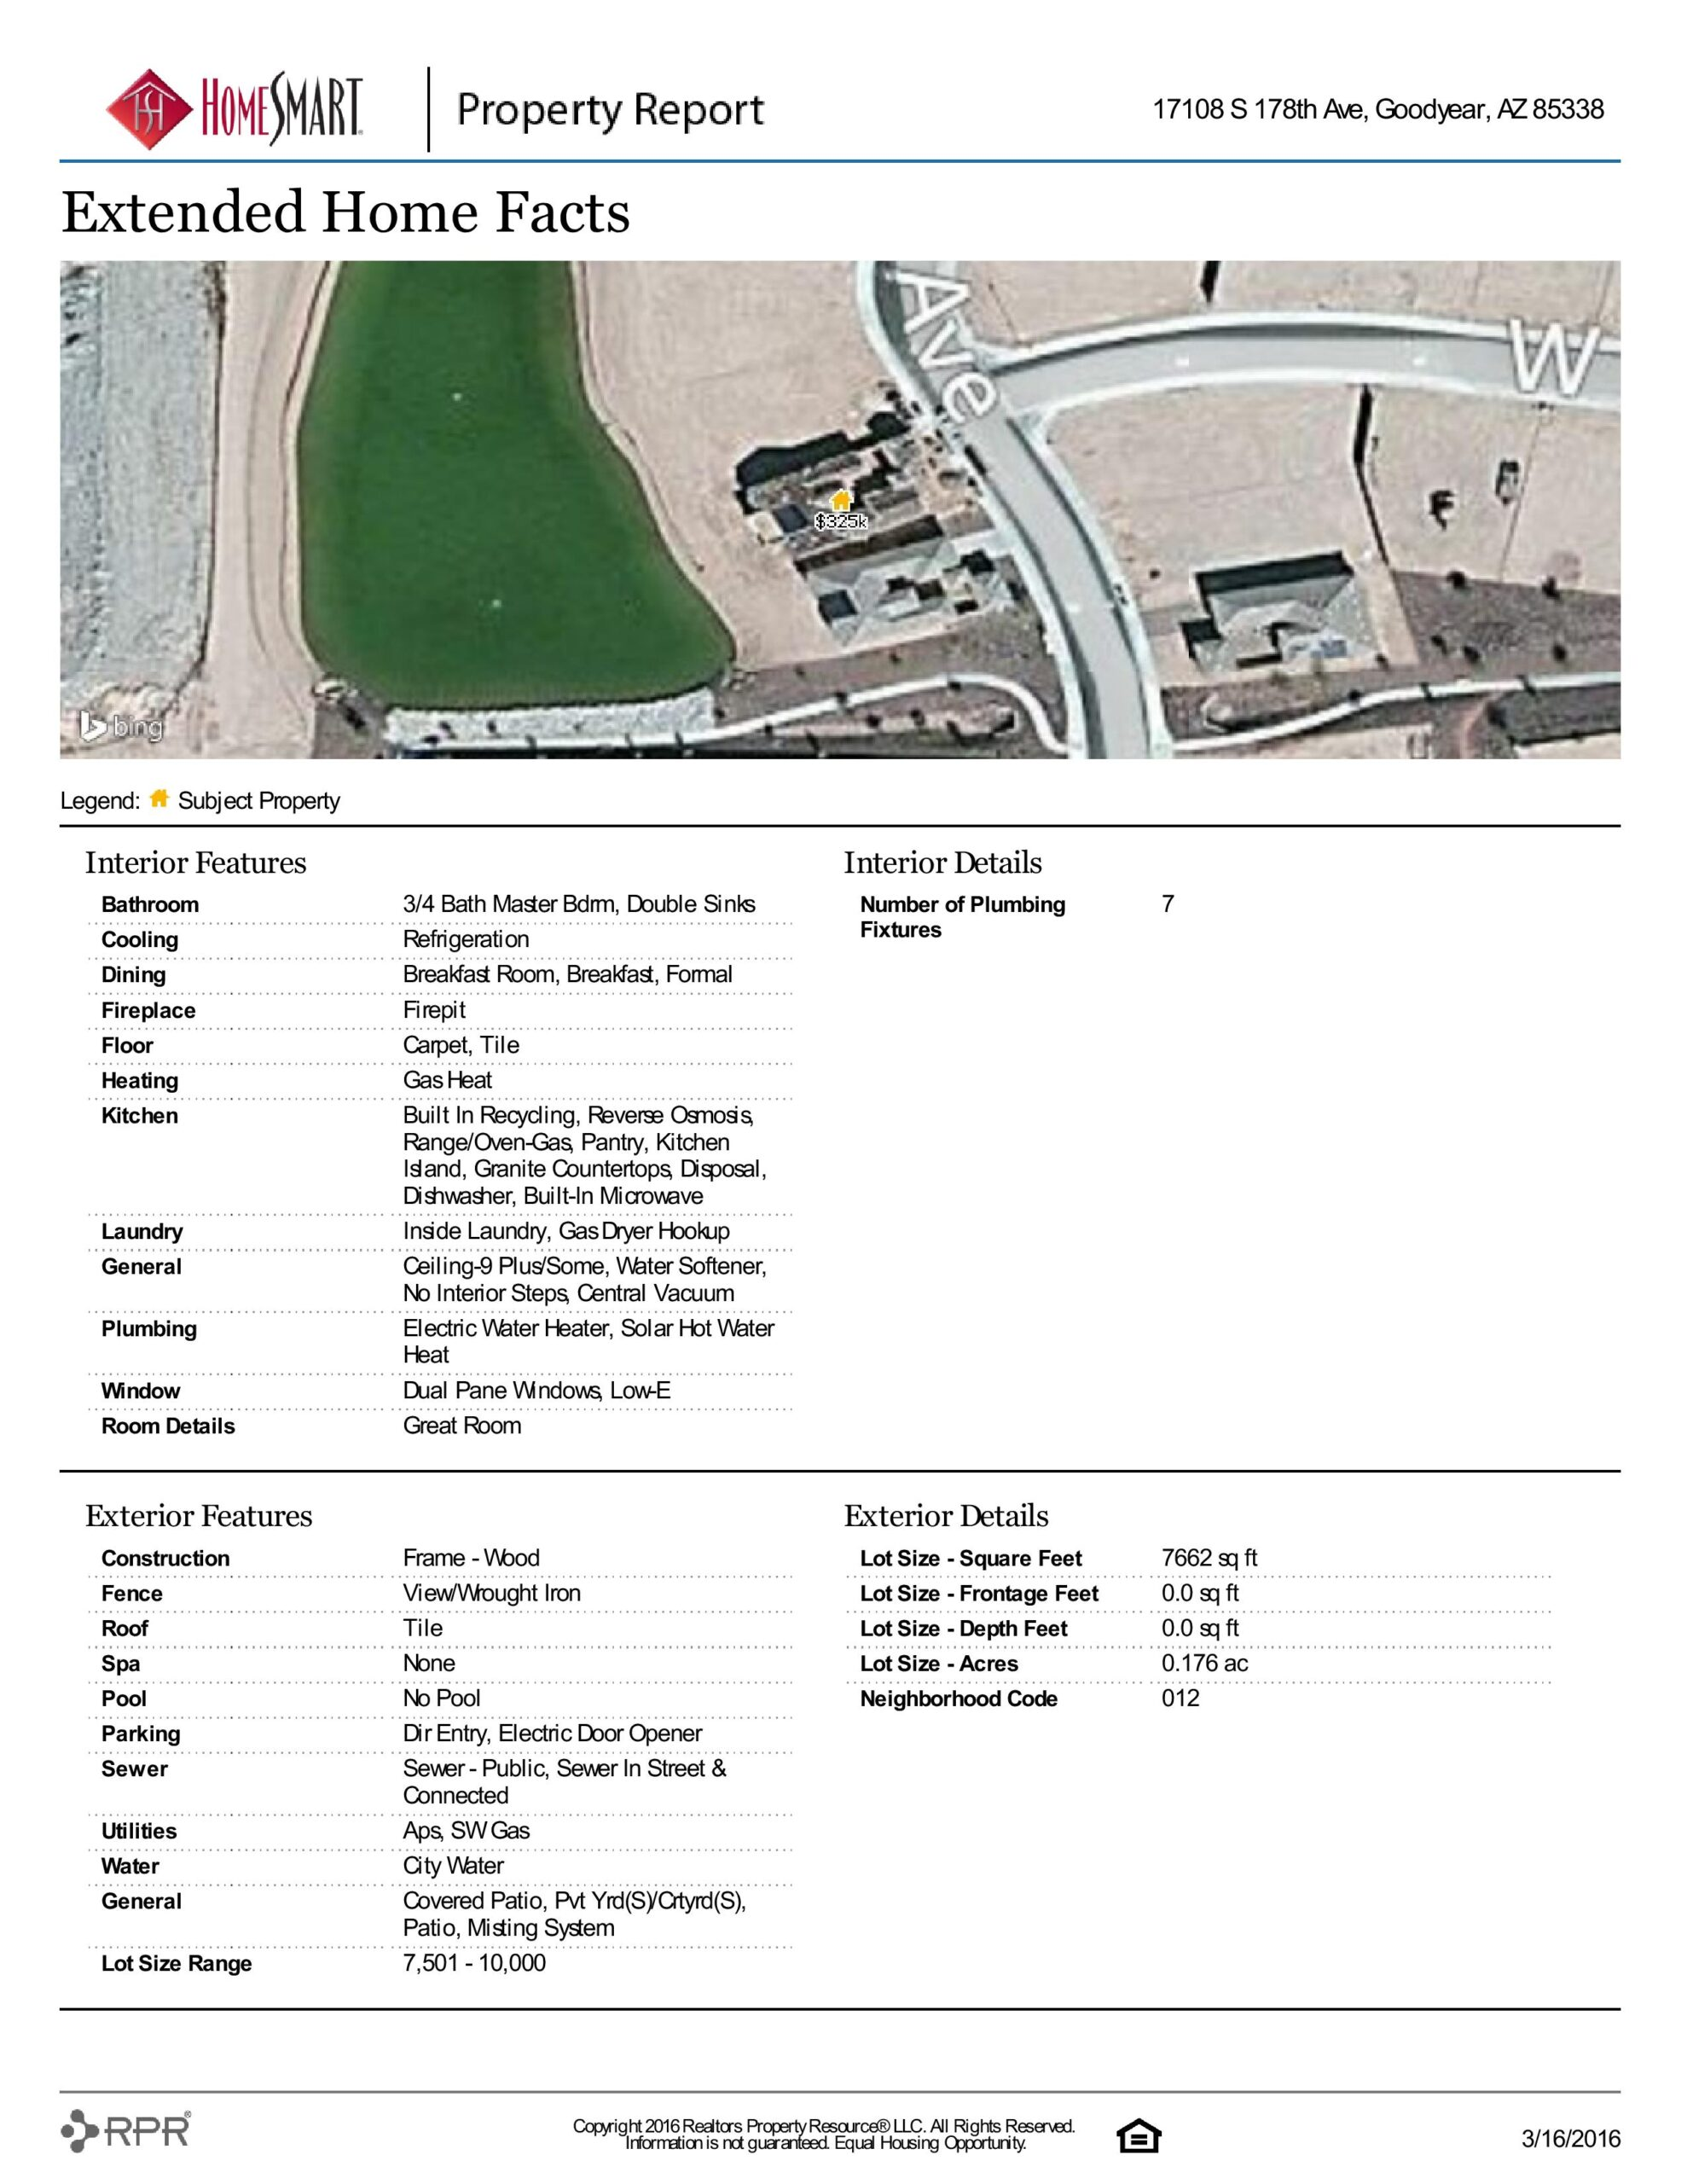 17108 S 178TH AVE PROPERTY REPORT-page-004